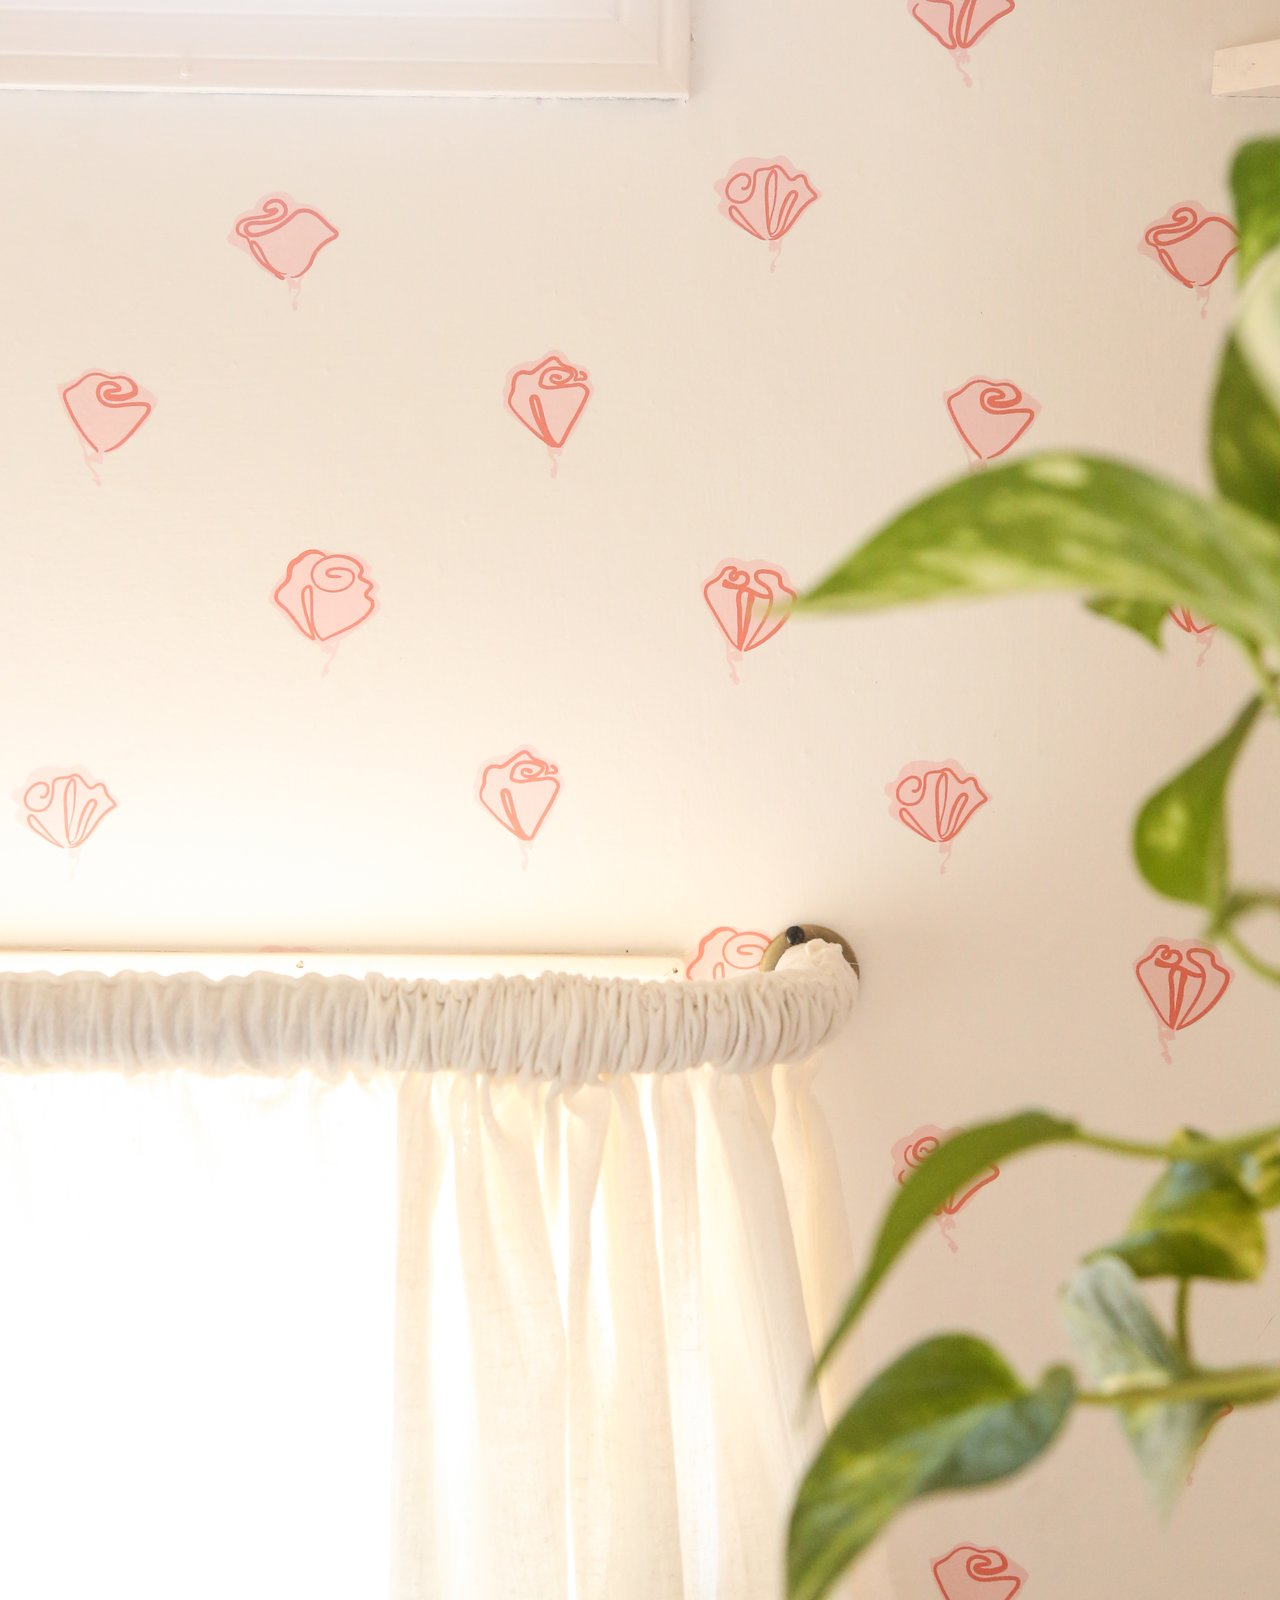 An accent wall at the head of the bed sports Hygge and West wallpaper in a rose pattern, in homage to the newly refreshed camper's name.